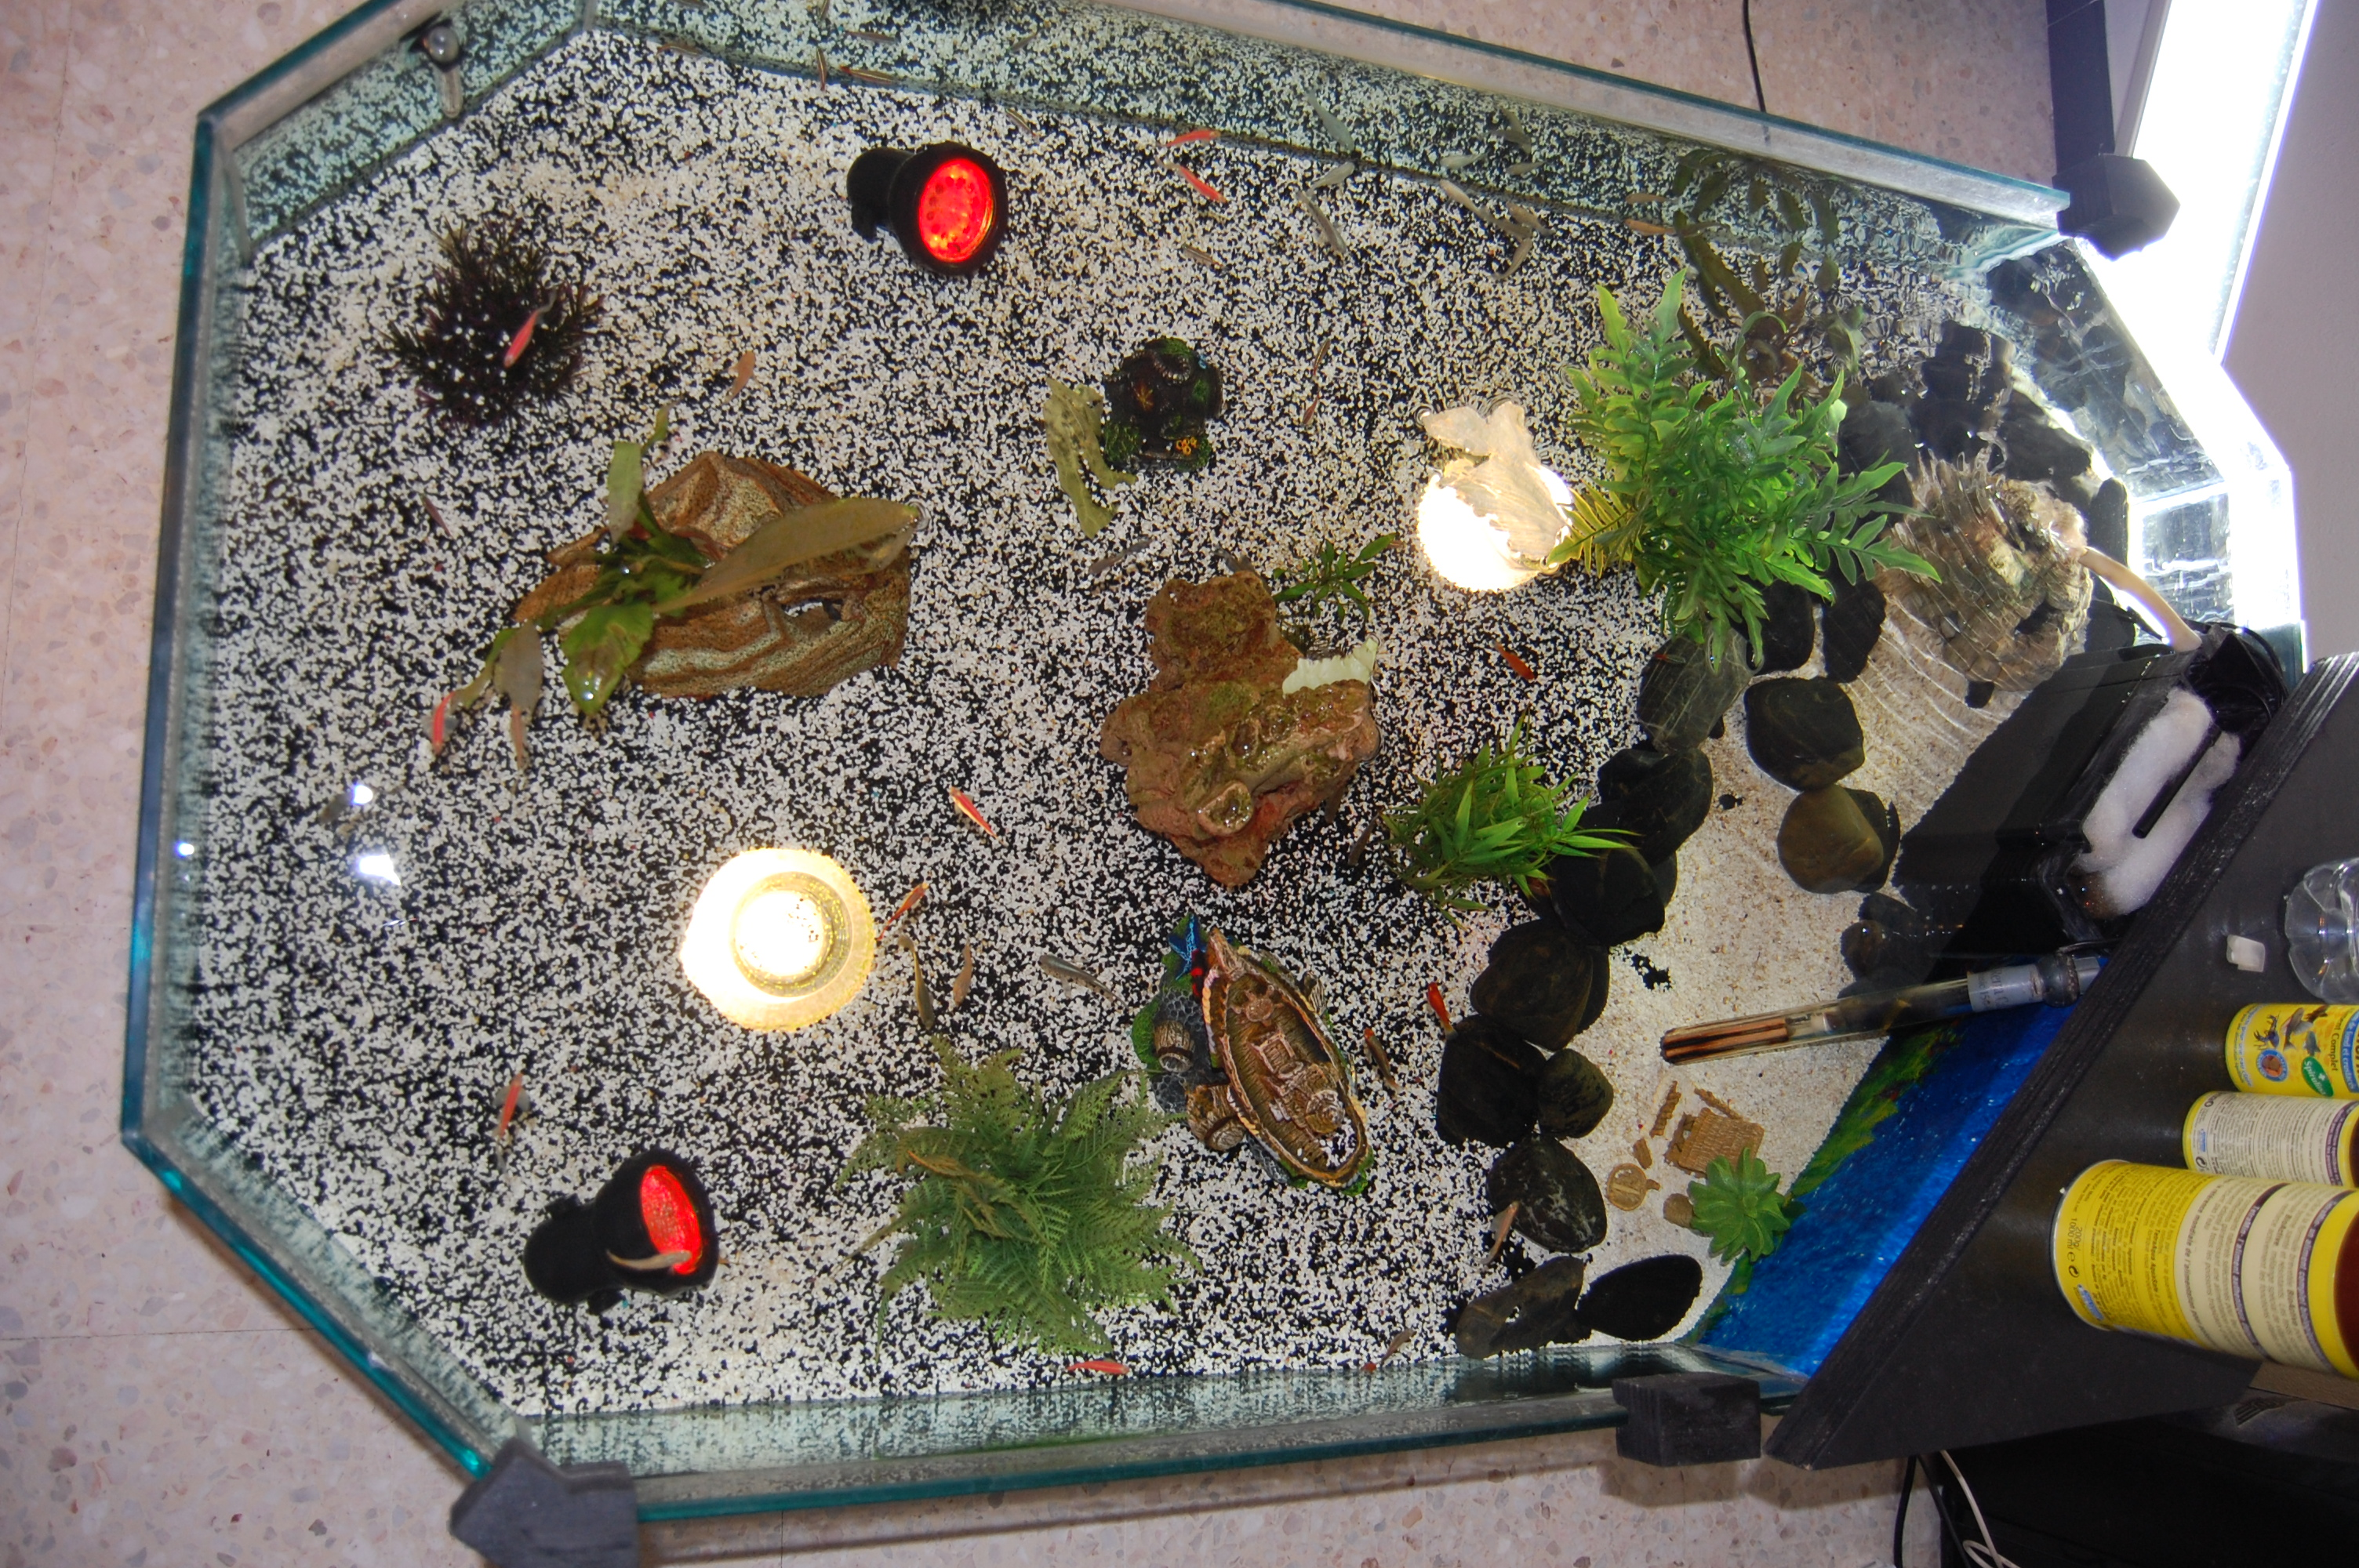 Table basse aquarium fait maison for Table basse fait maison